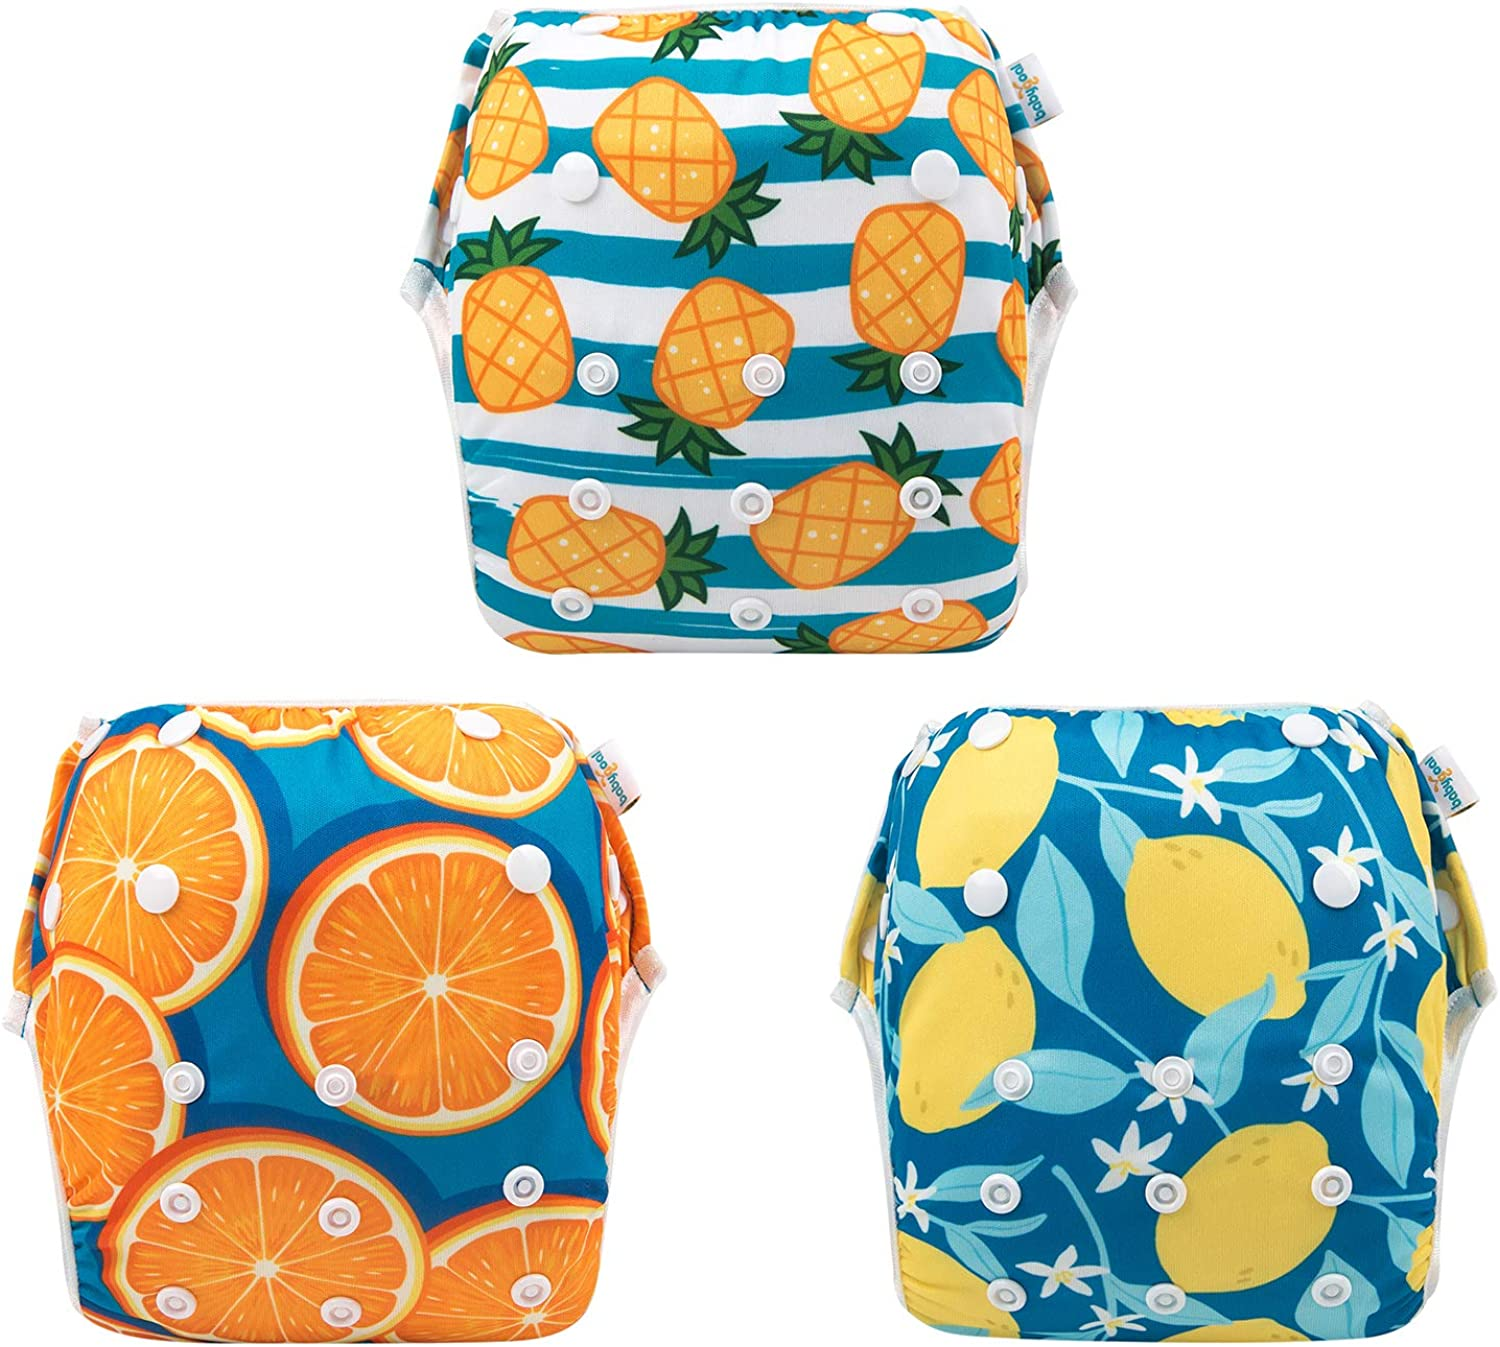 Swimming Lessons Washable and Adjustable for Babies 0-2 Years babygoal Baby Reusable Swim Diaper